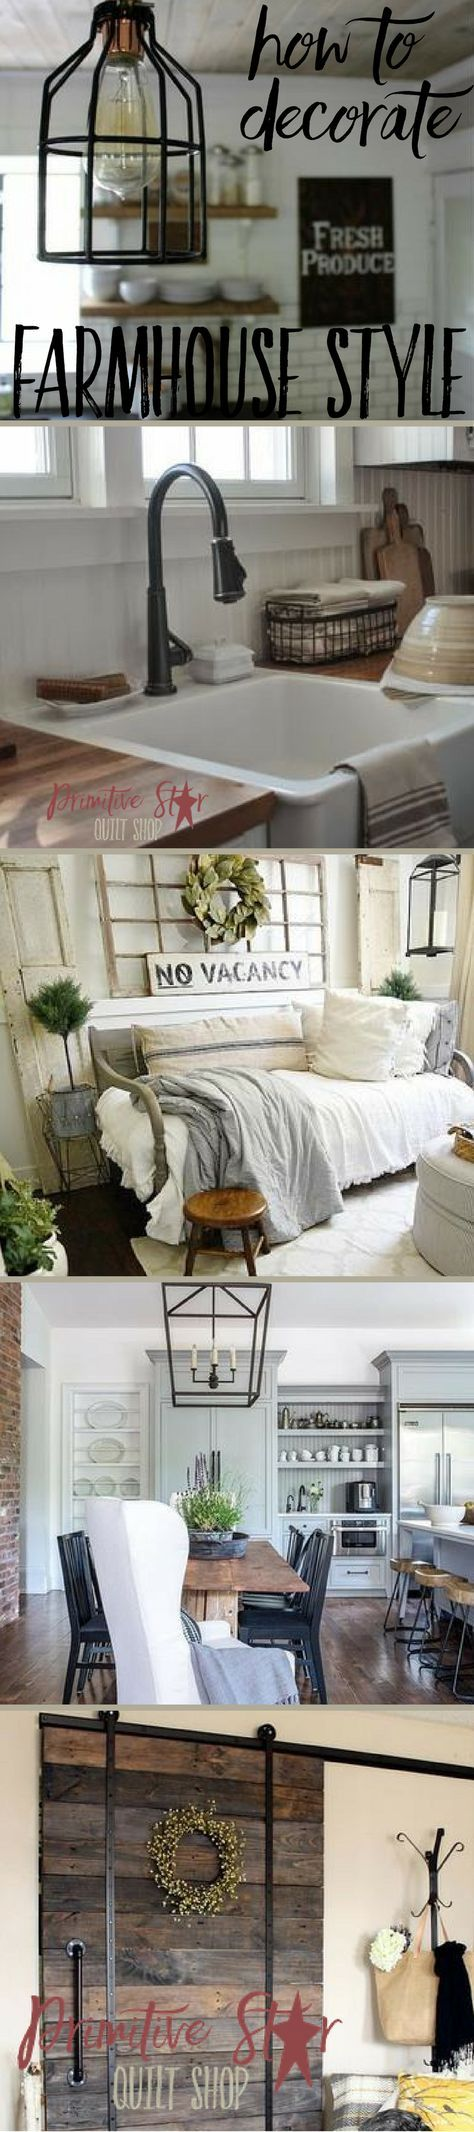 How To Decorate Farmhouse Style | Modern country, Farmhouse style ...